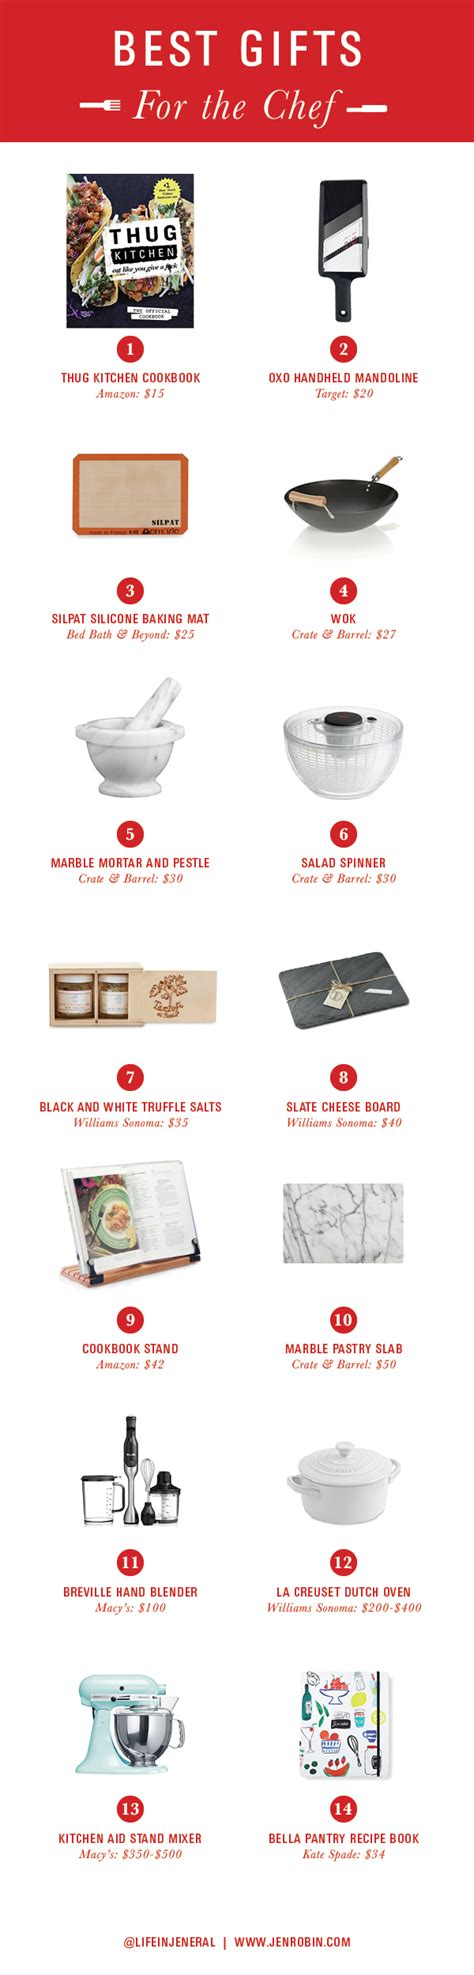 gift ideas for chefs the best gifts for the chef kitchen gift ideas